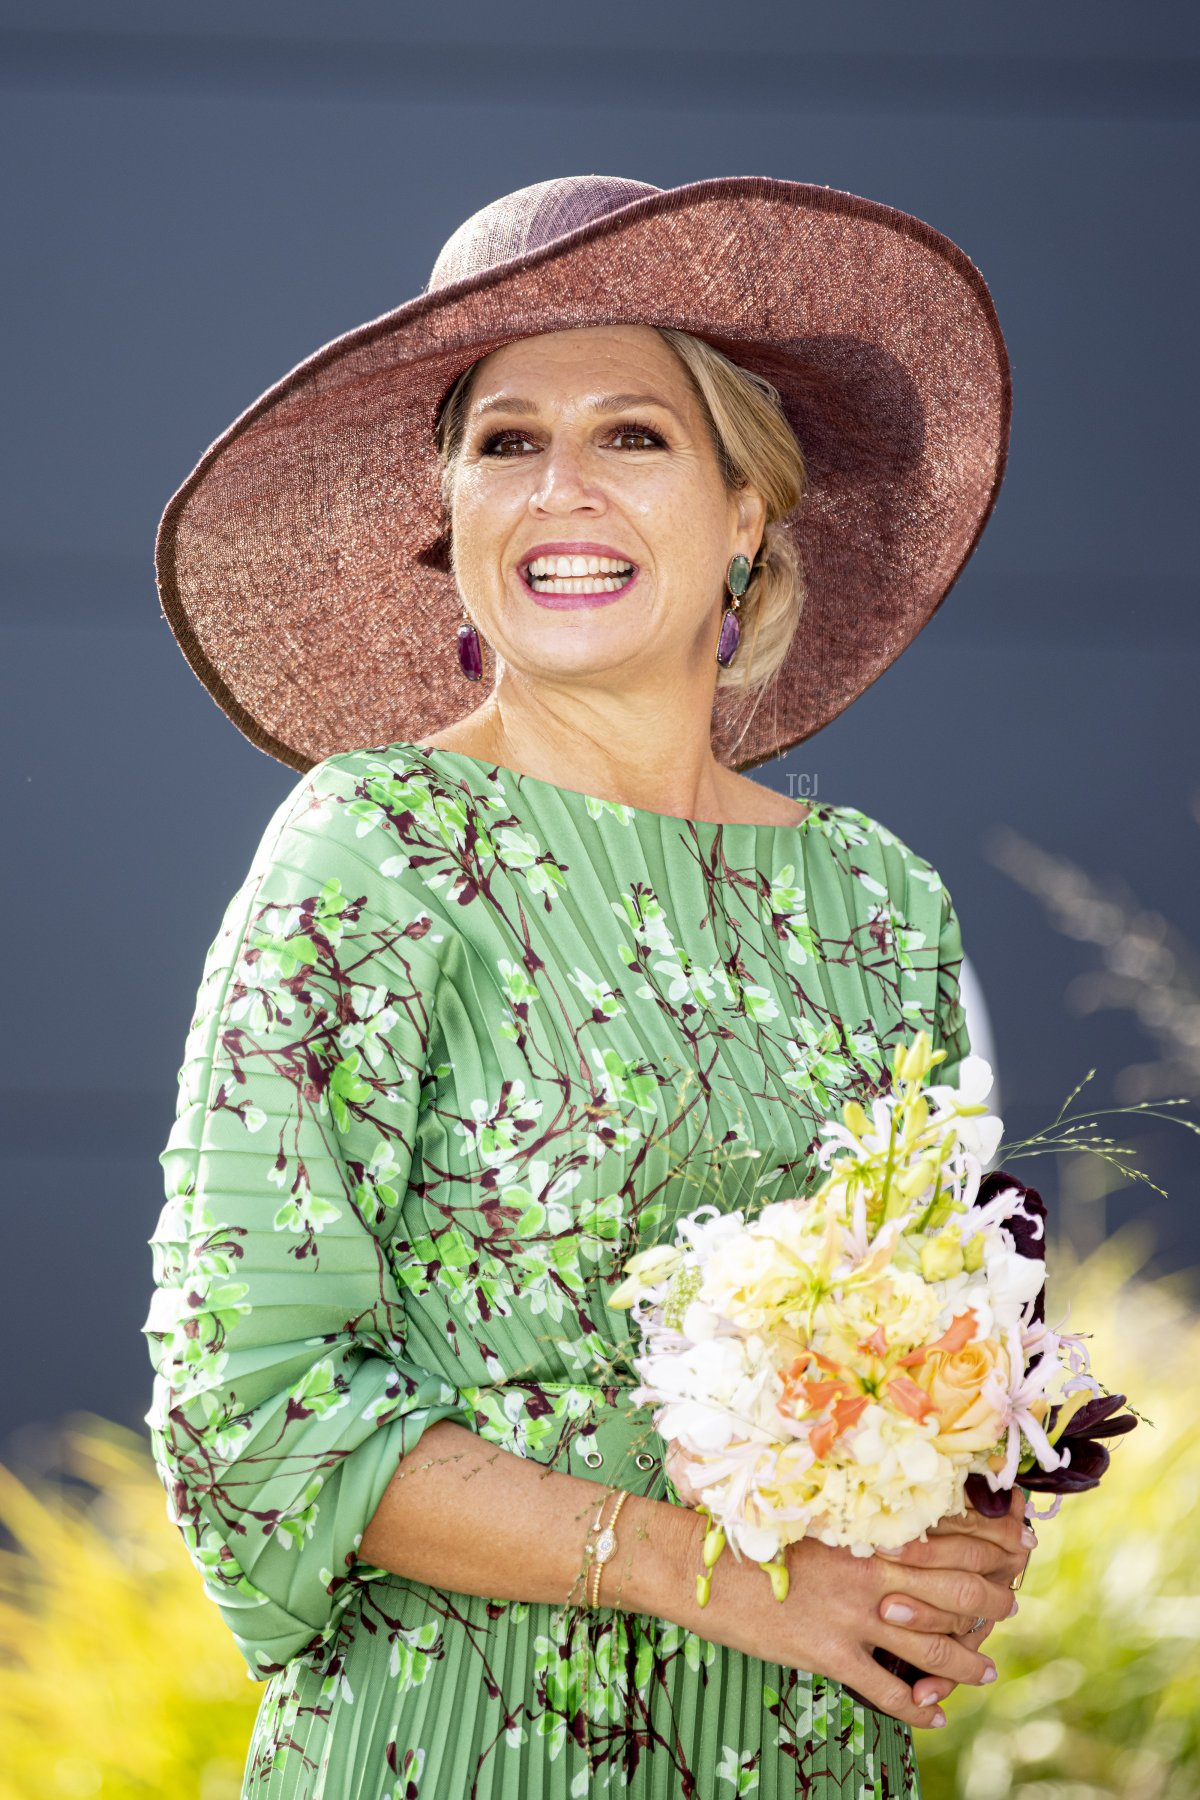 Queen Maxima of The Netherlands visits Auping Mattresses, Box springs and beds production hal on September 14, 2021 in Deventer, Netherlands. The King and Queen are visiting the Dutch region Salland